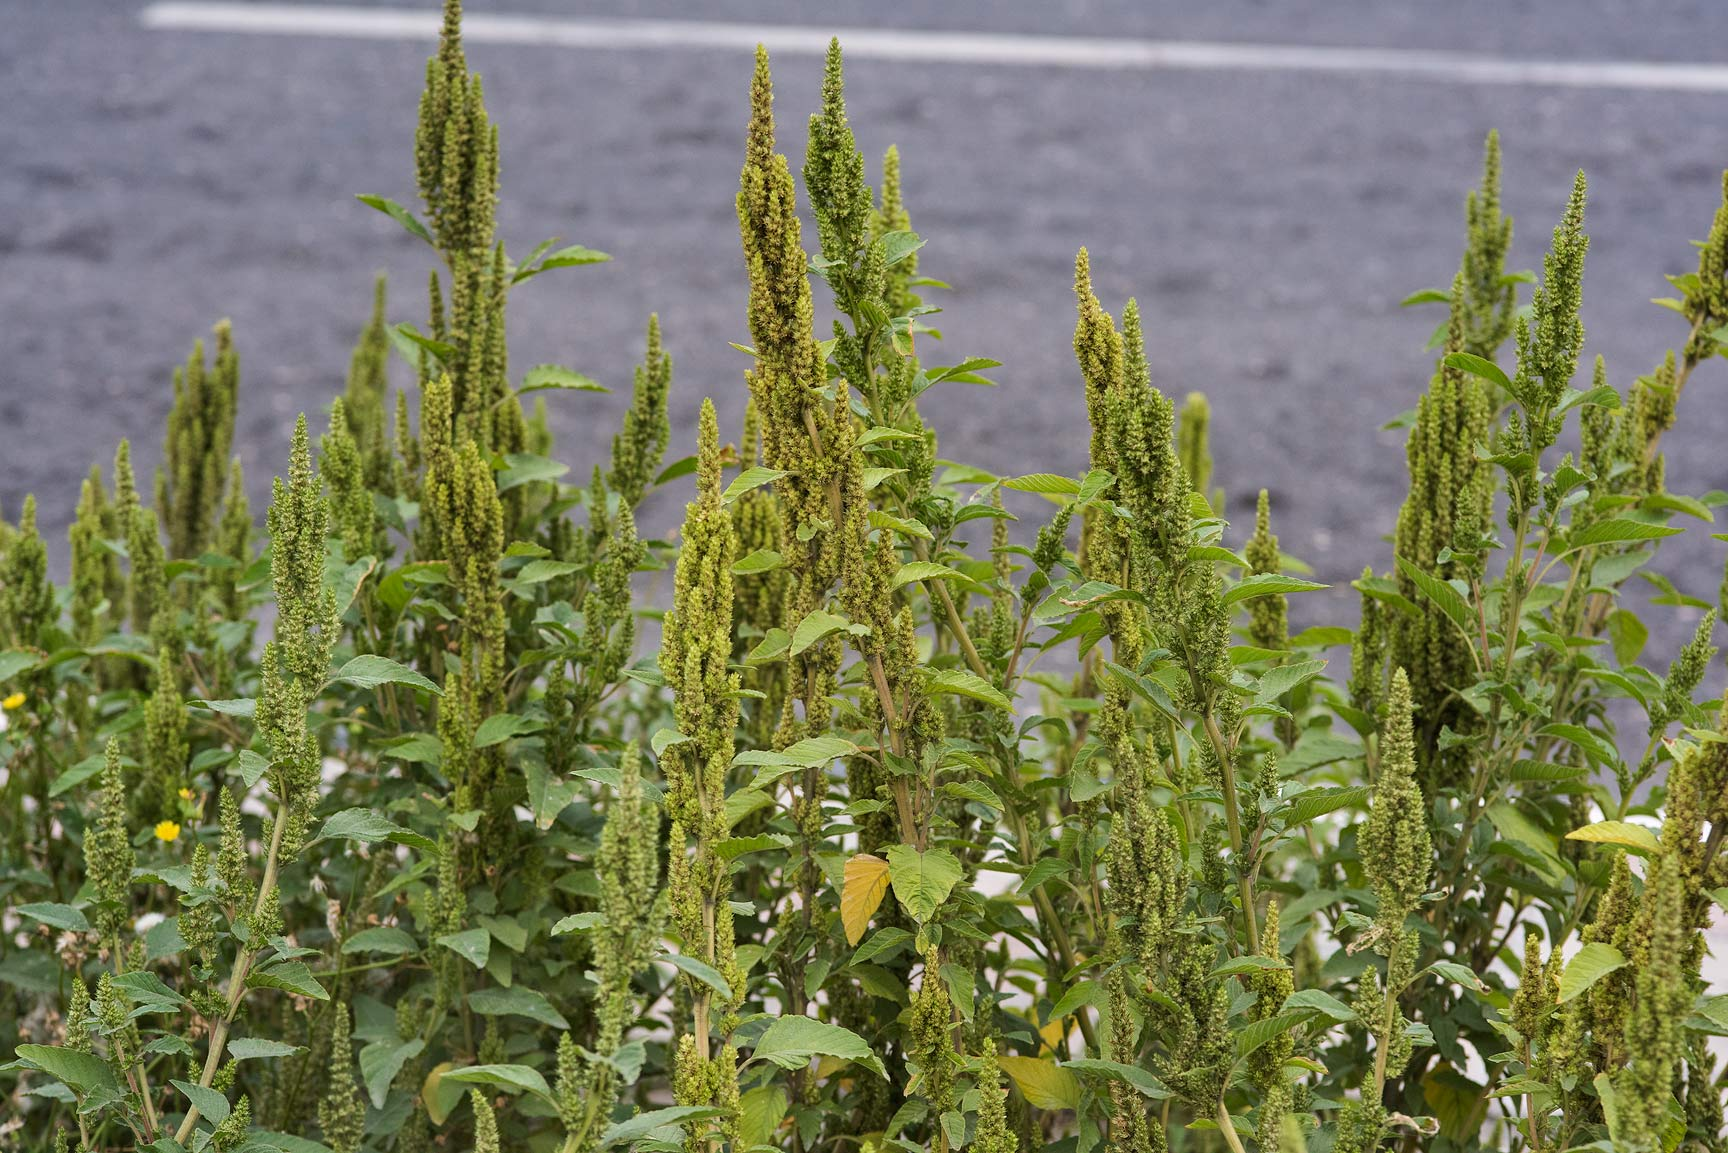 Slender amaranth (Amaranthus viridis) on the...St. in Onaiza area. Doha, Qatar